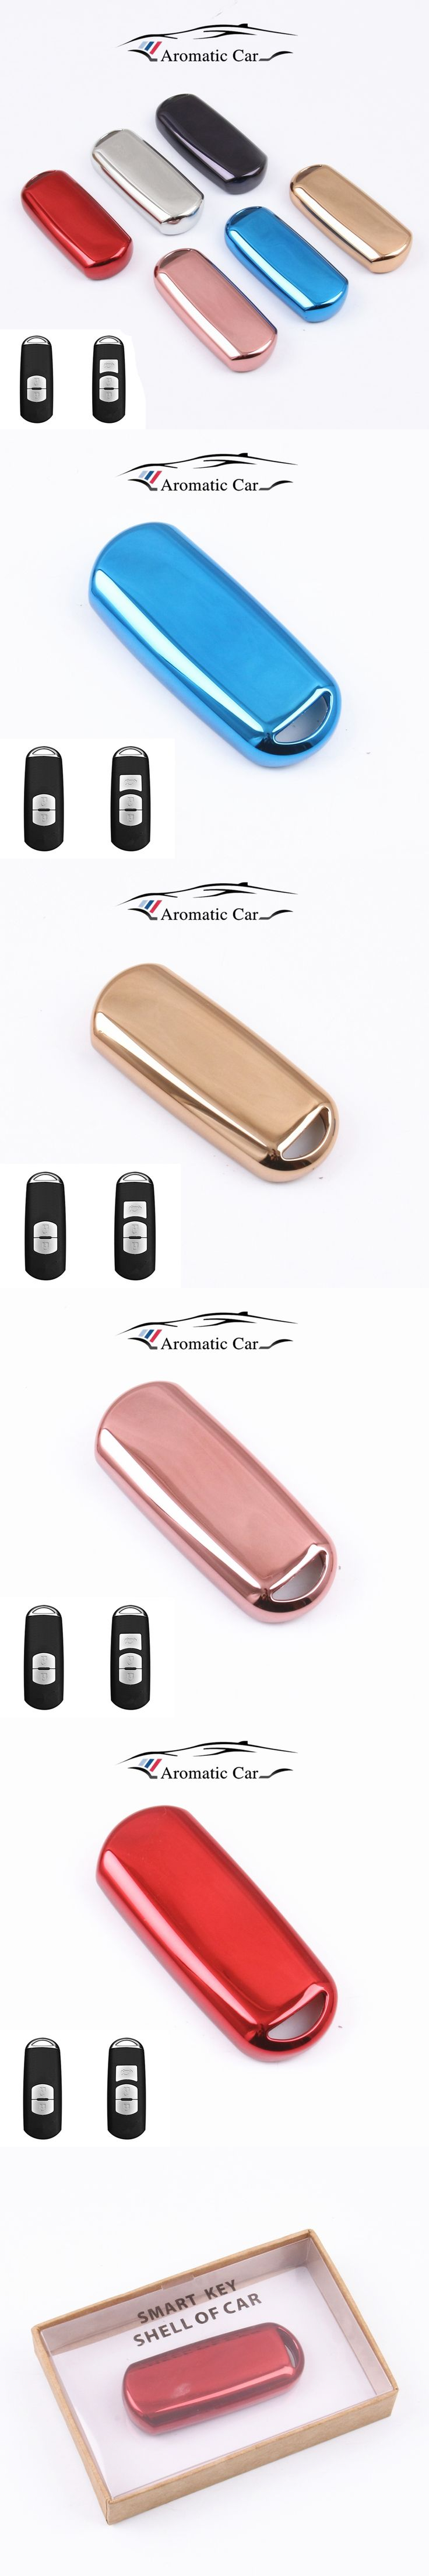 TPU car key fob cover case set protect for Mazda 2 mazda 3 mazda 5 mazda 6 CX-3 CX-4 CX-5 CX-7 CX-9 Atenza Axela MX5 Car styling